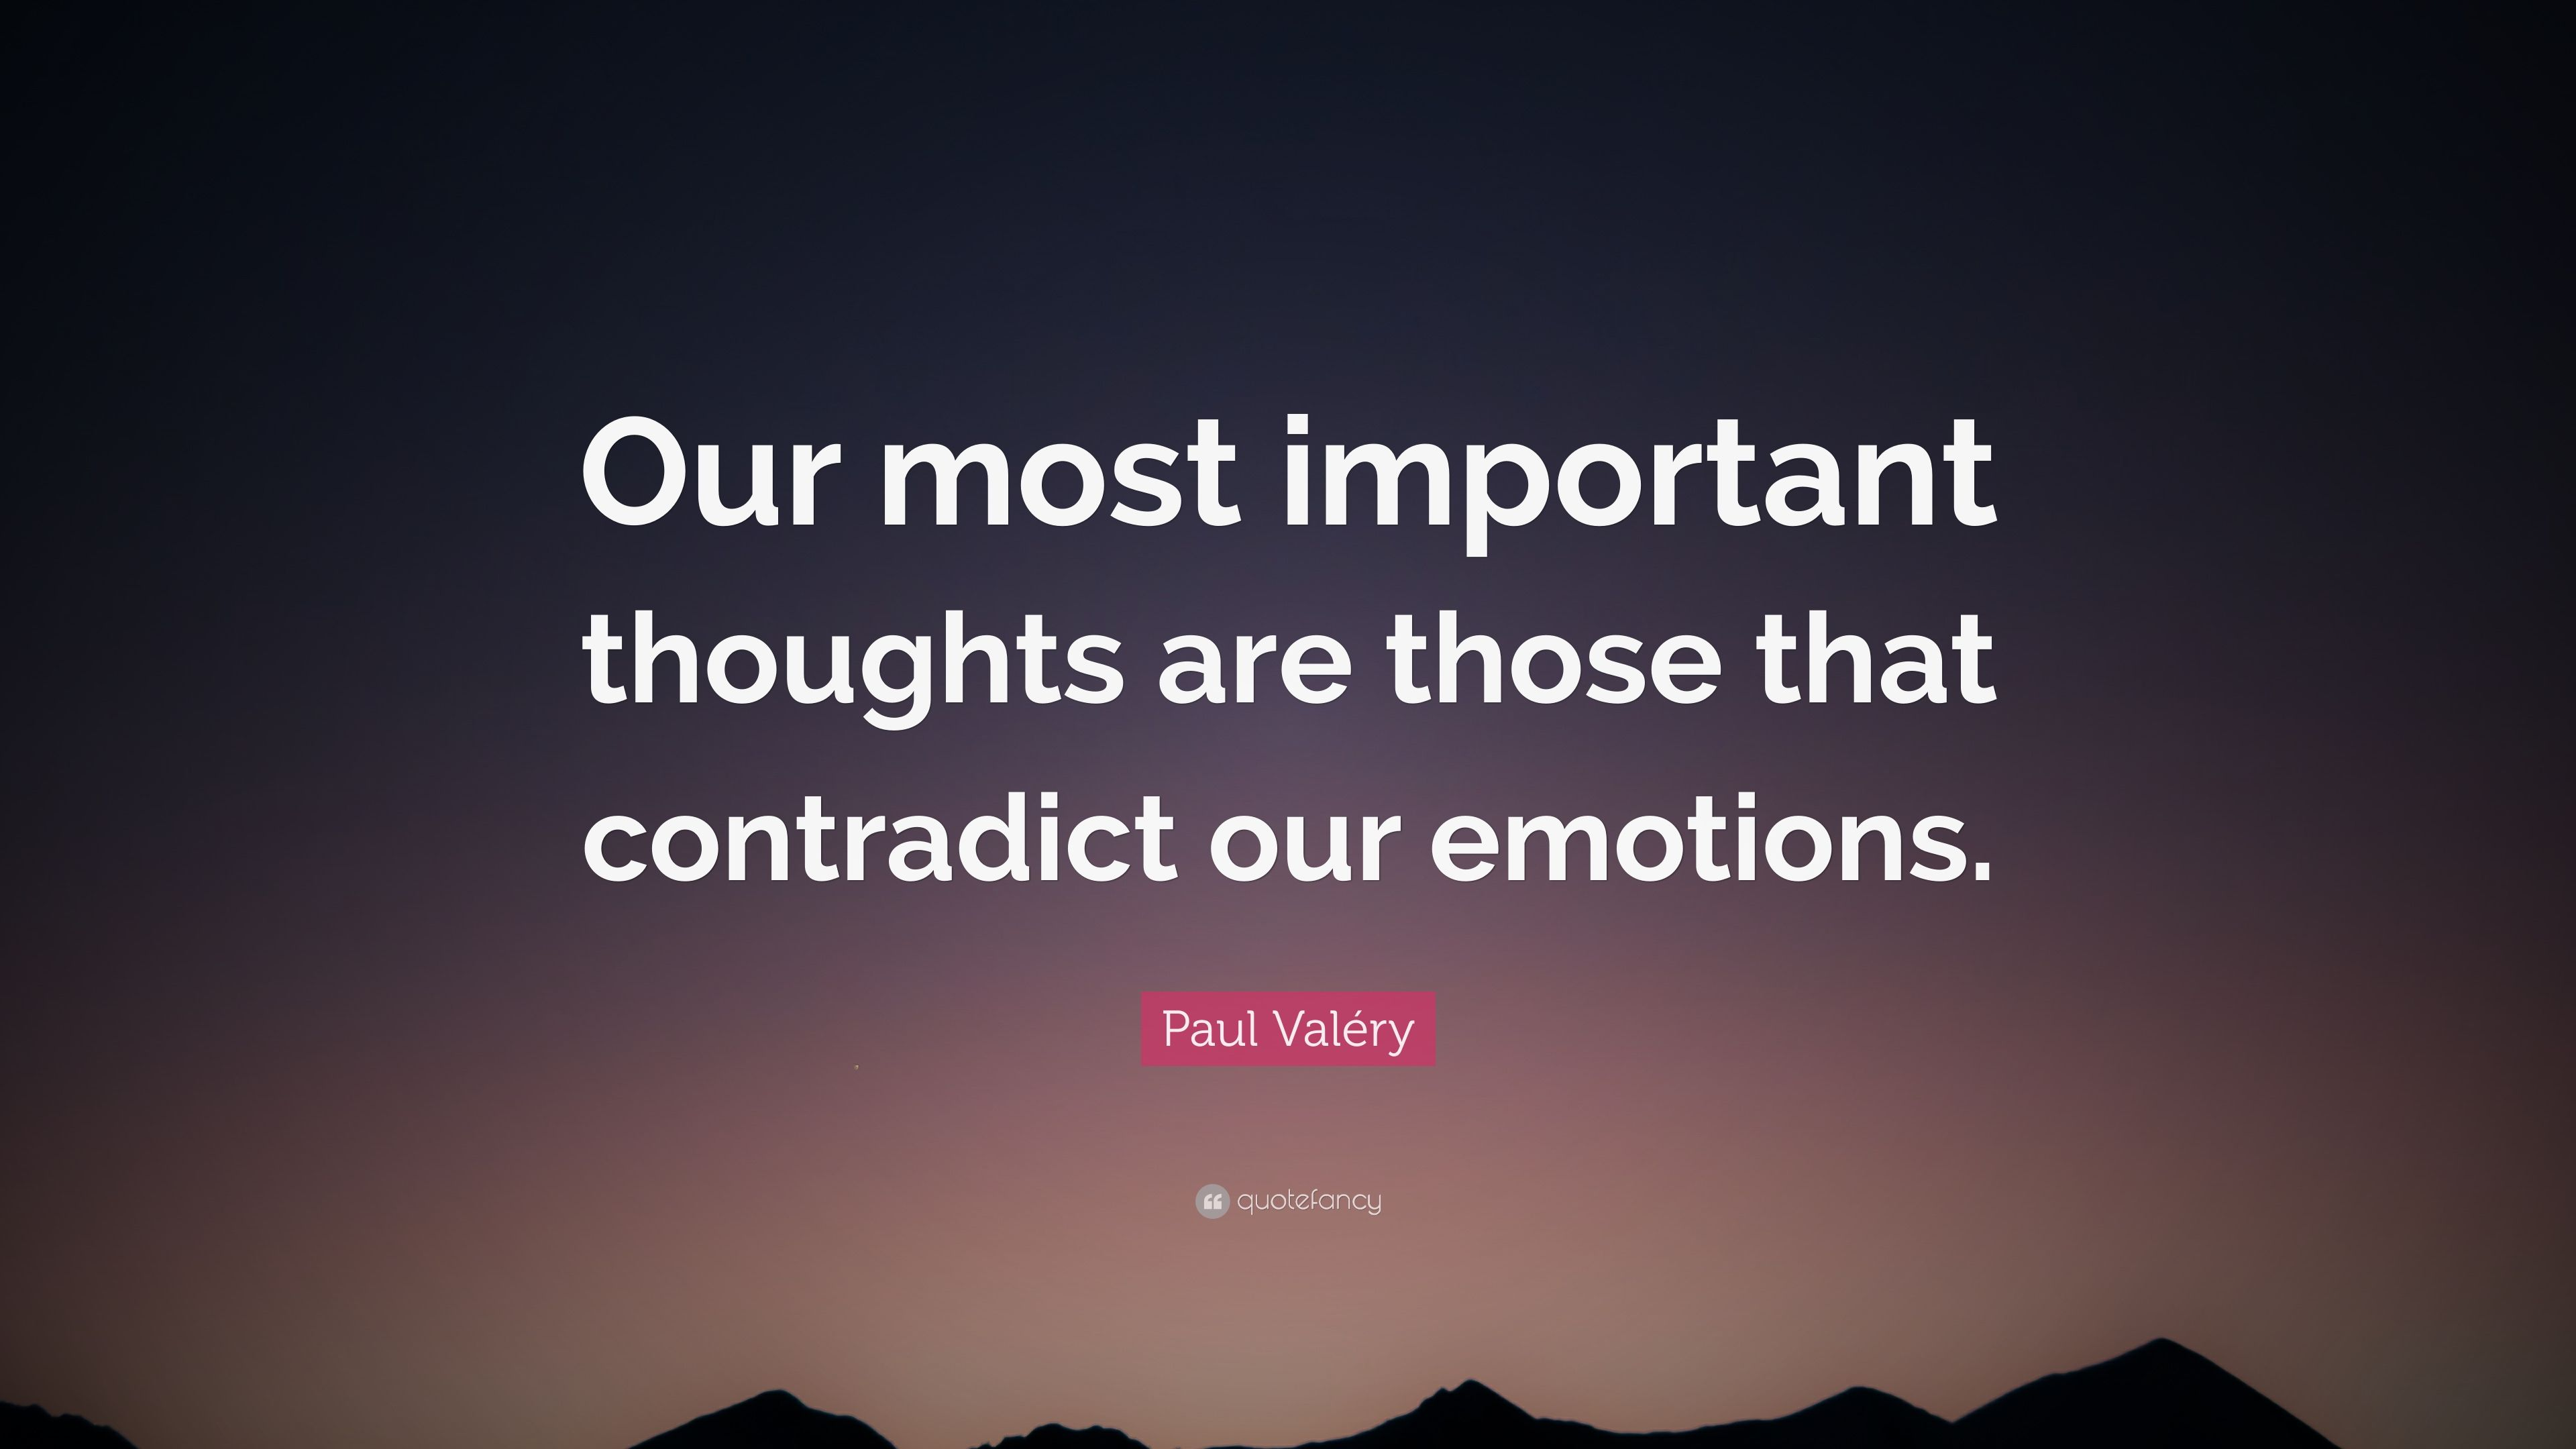 Paul Valery Quote Our Most Important Thoughts Are Those That Contradict Our Emotions